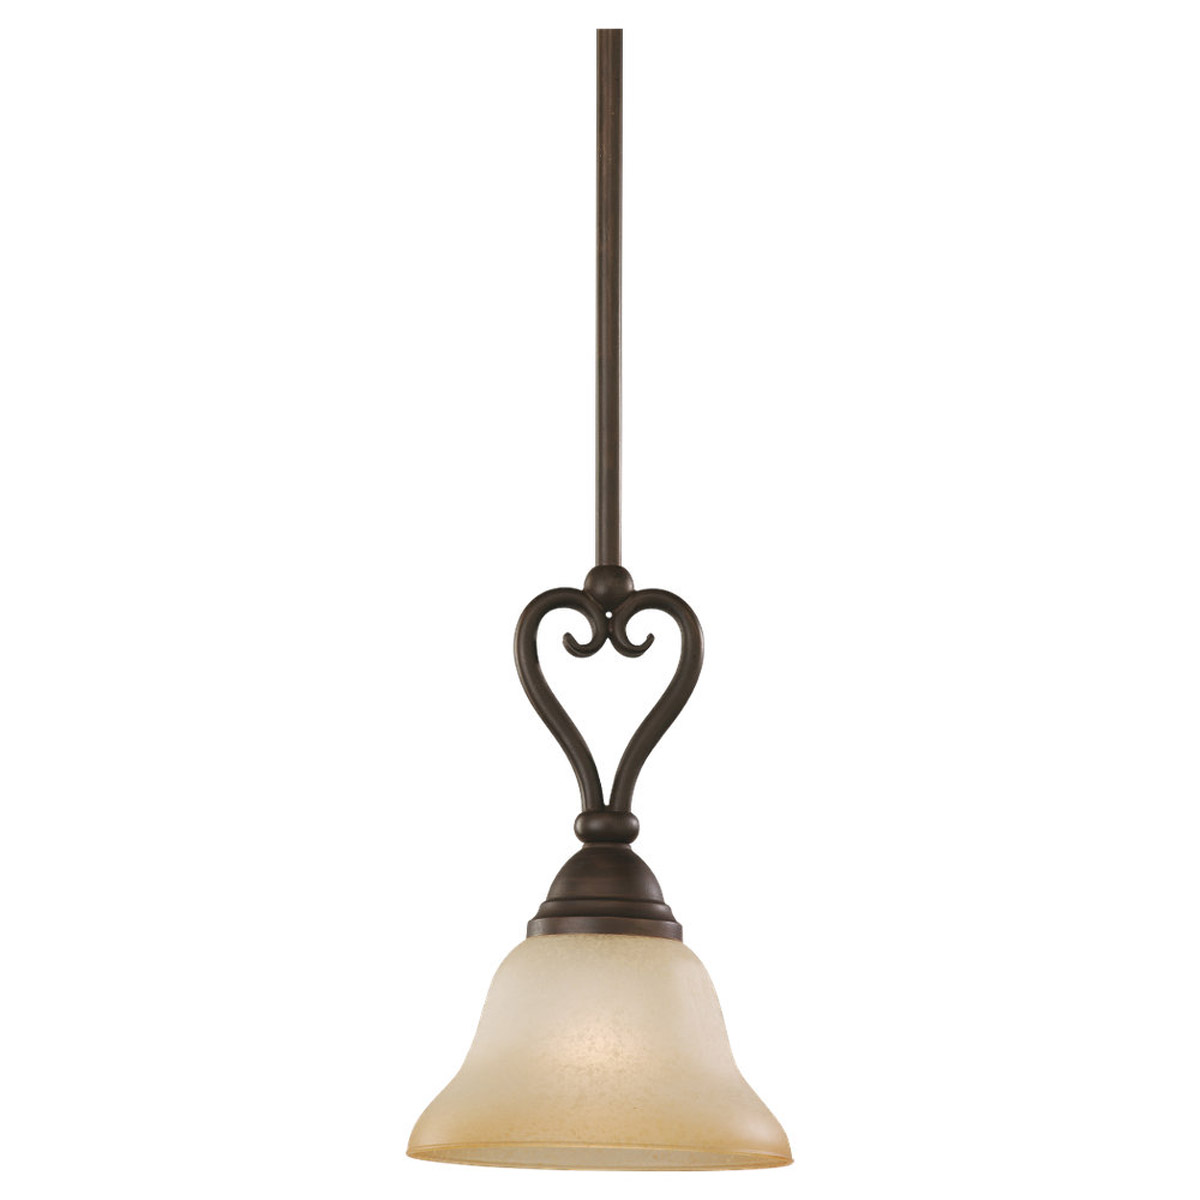 Sea Gull Lighting Montclaire 1 Light Pendant in Olde Iron 61105-72